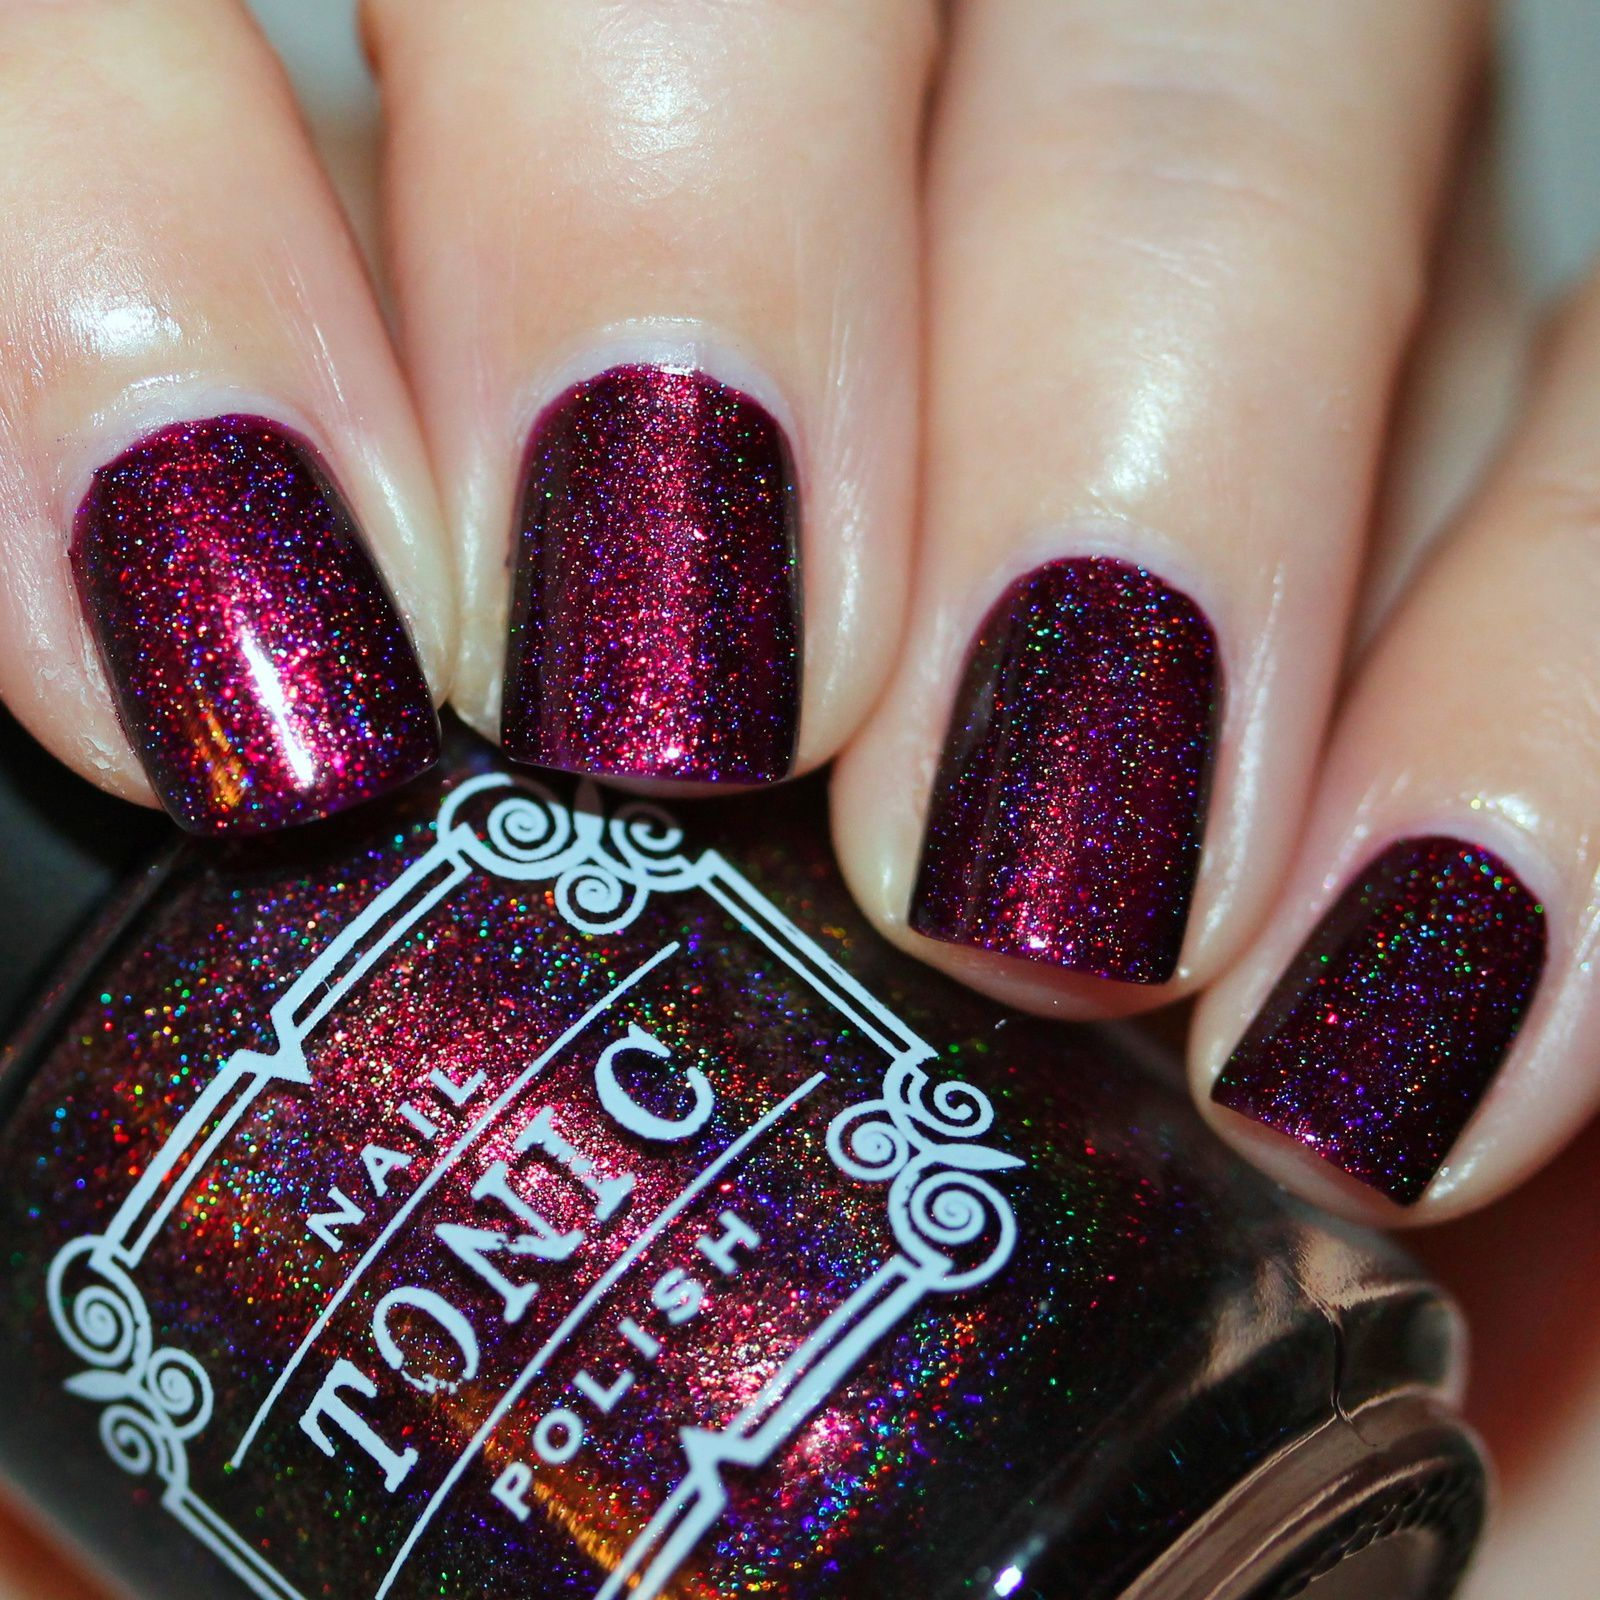 Tonic Polish Mulled Wine & Mistletoe (2 coats, not top coat)